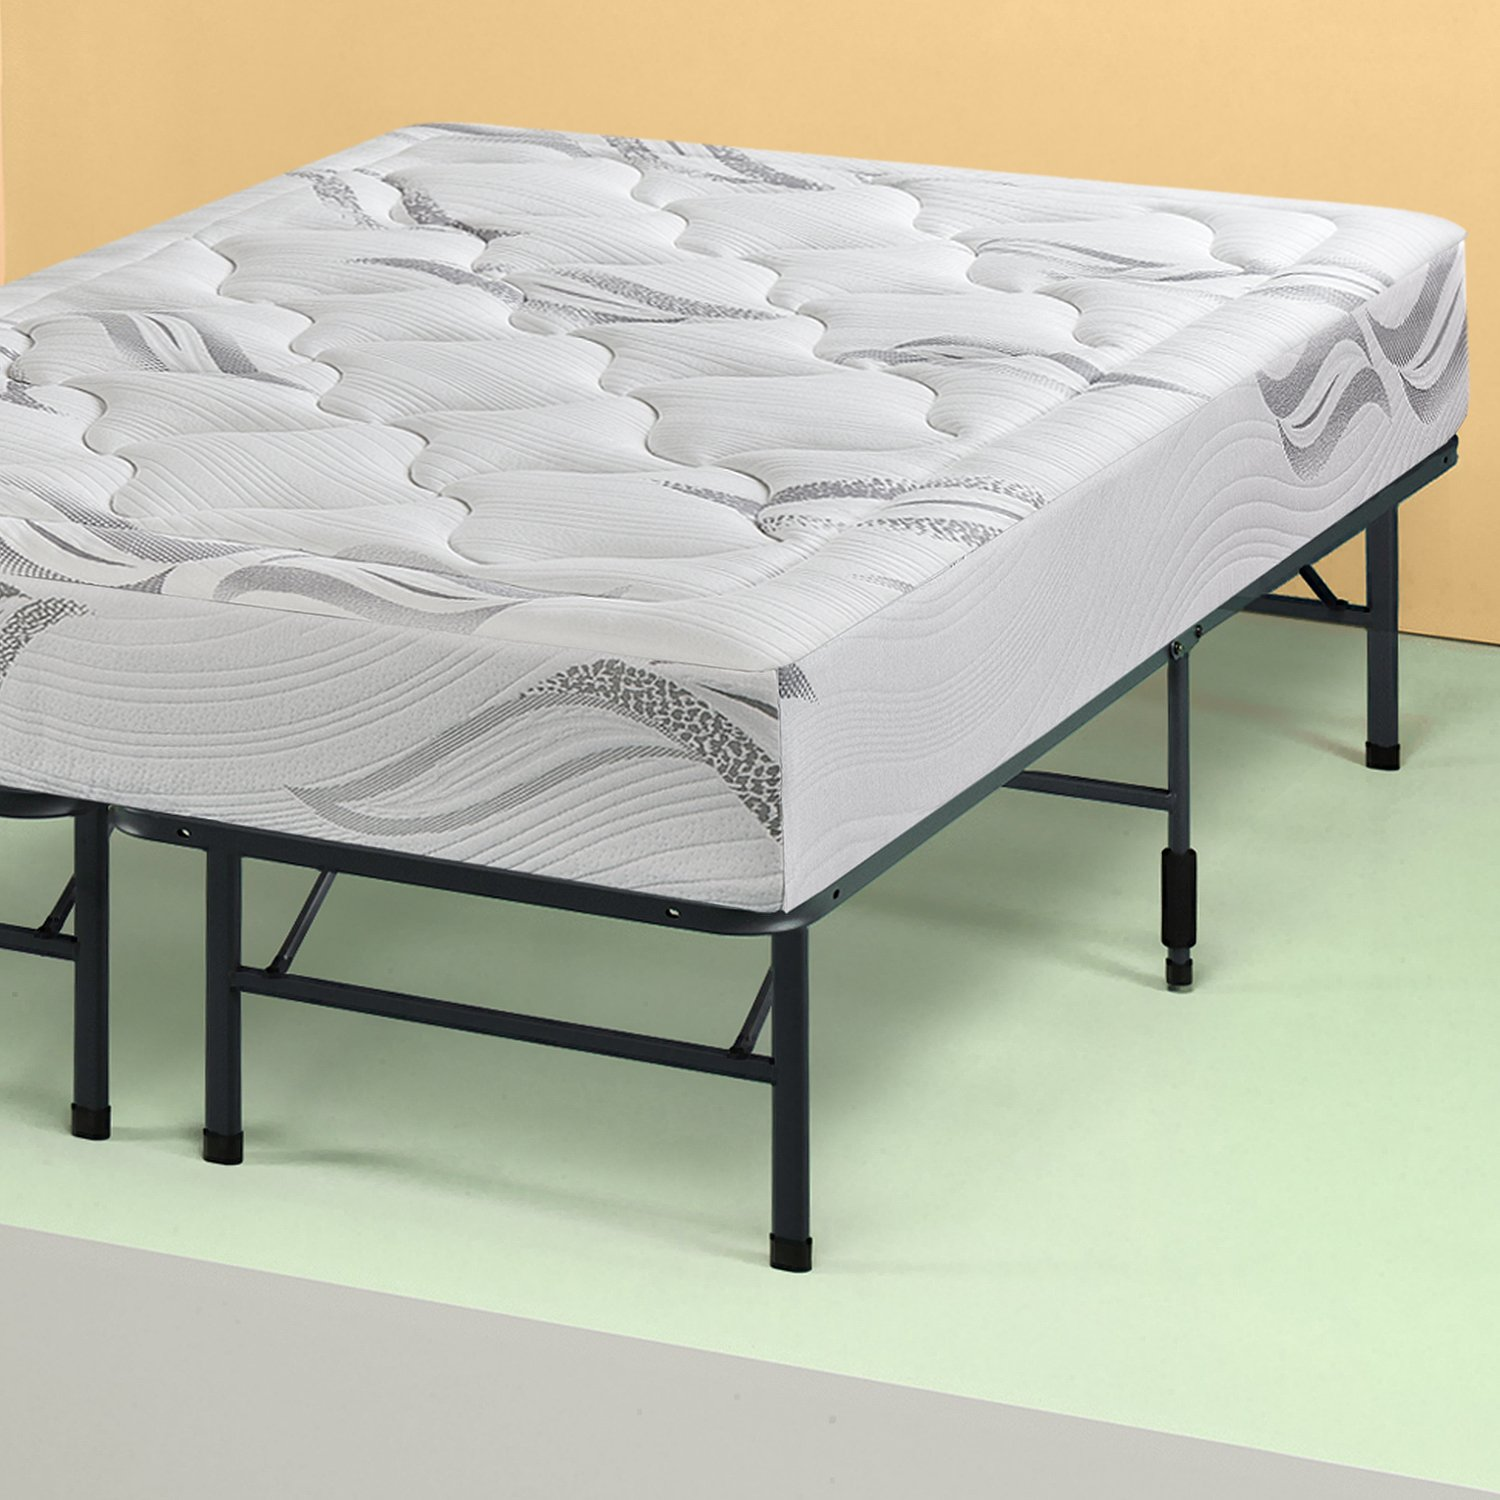 headboard sleep duty bed country frame base frames canada by heavy mattresses